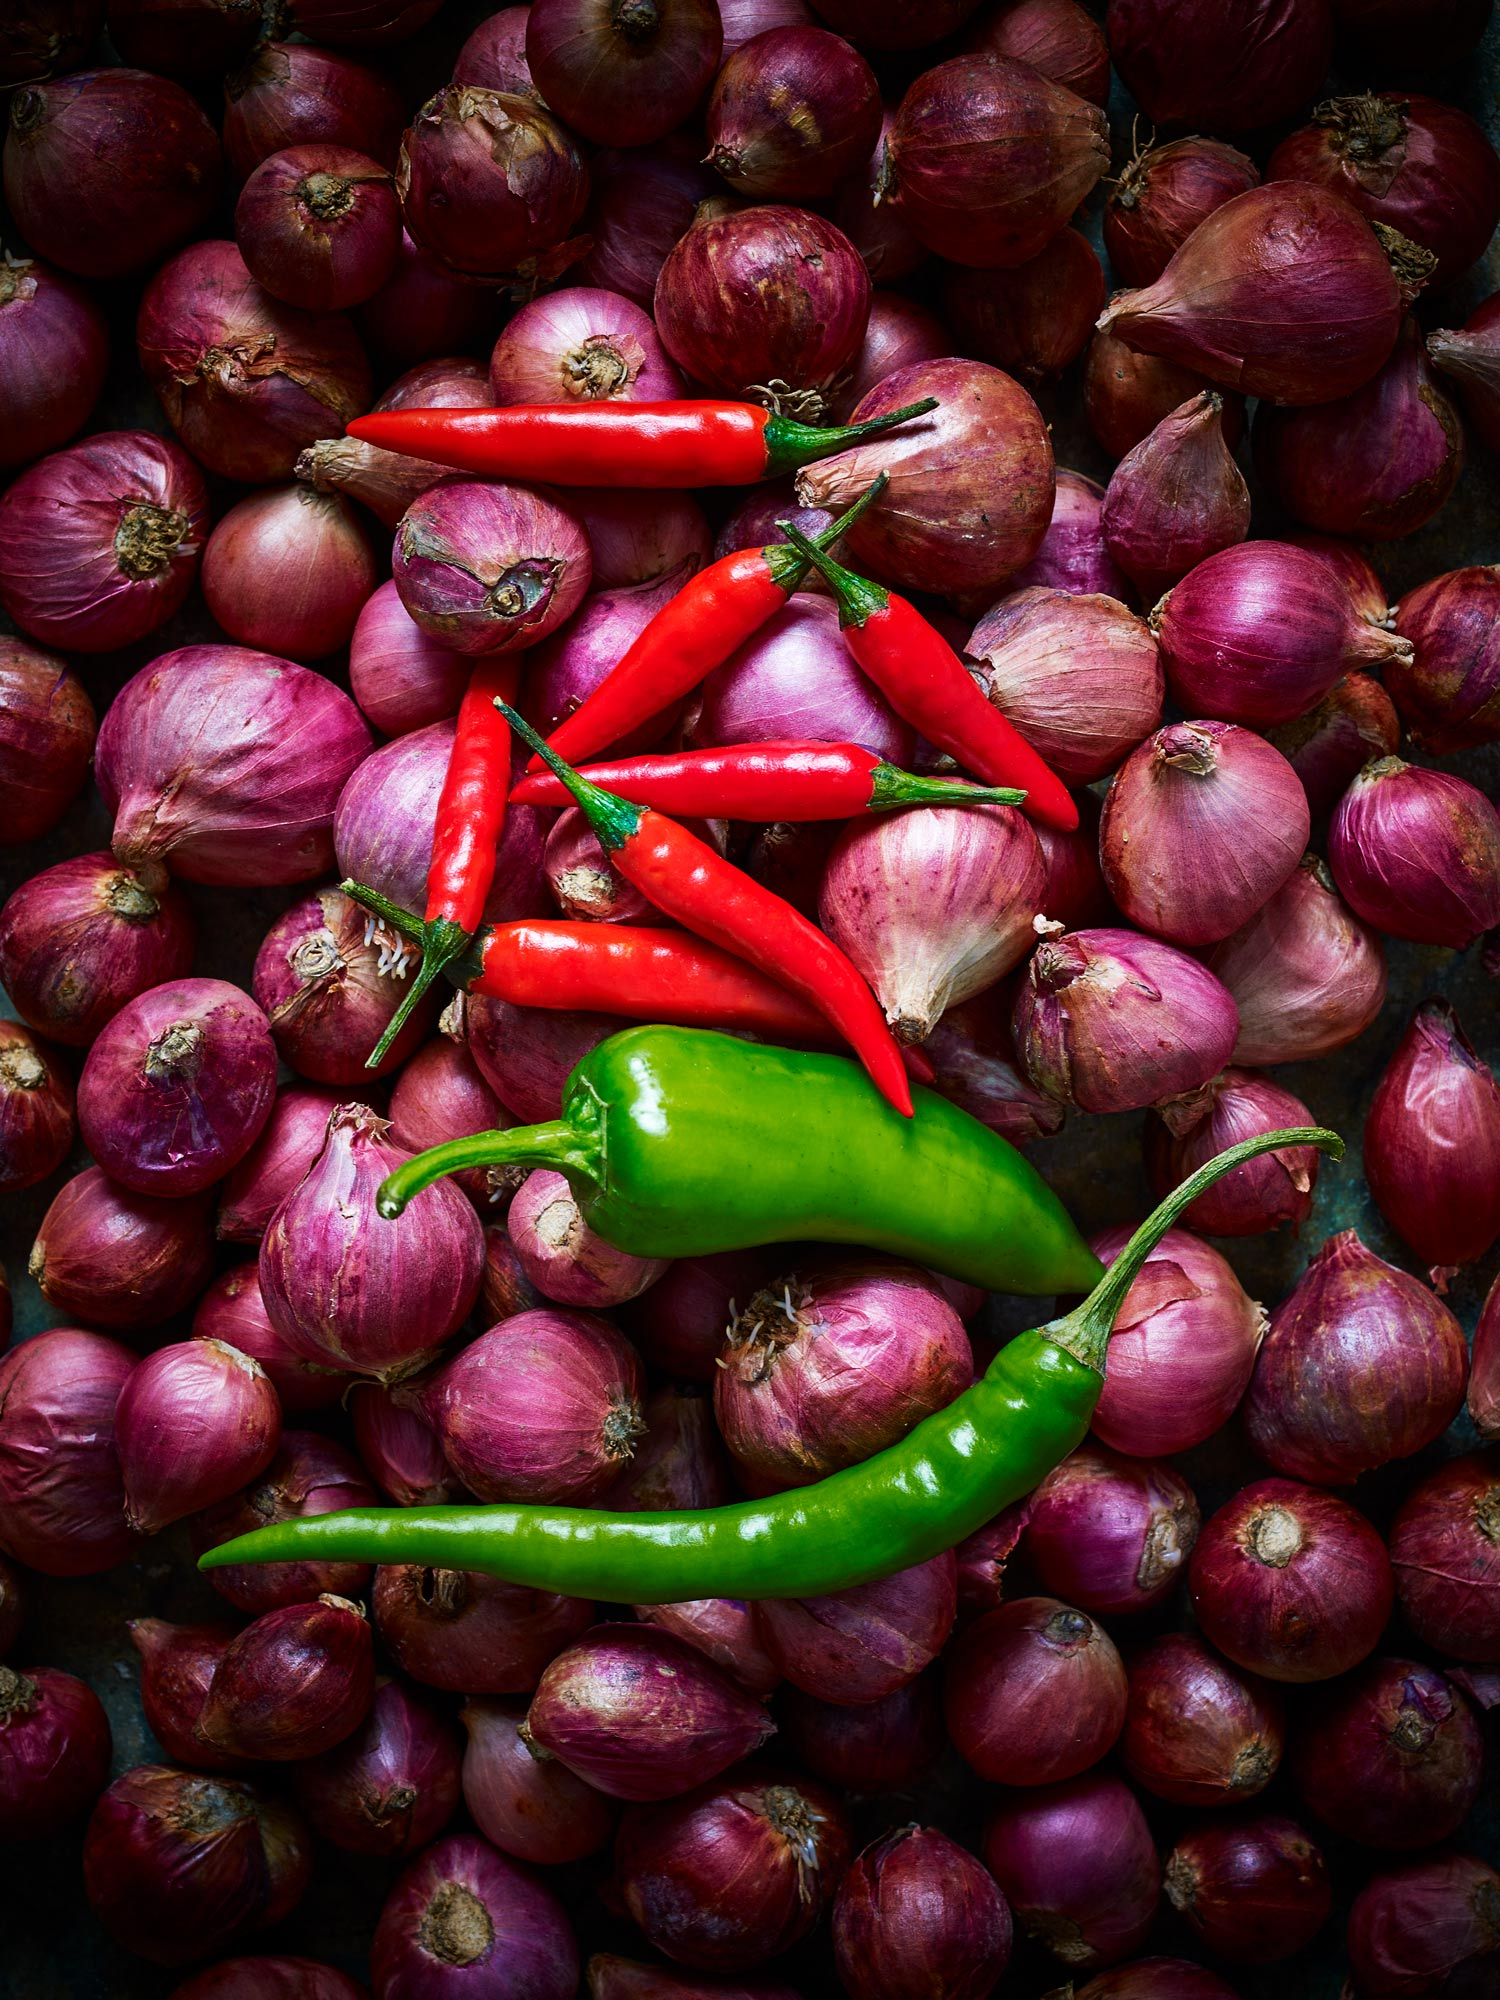 Stuart West - onions and chilli peppers